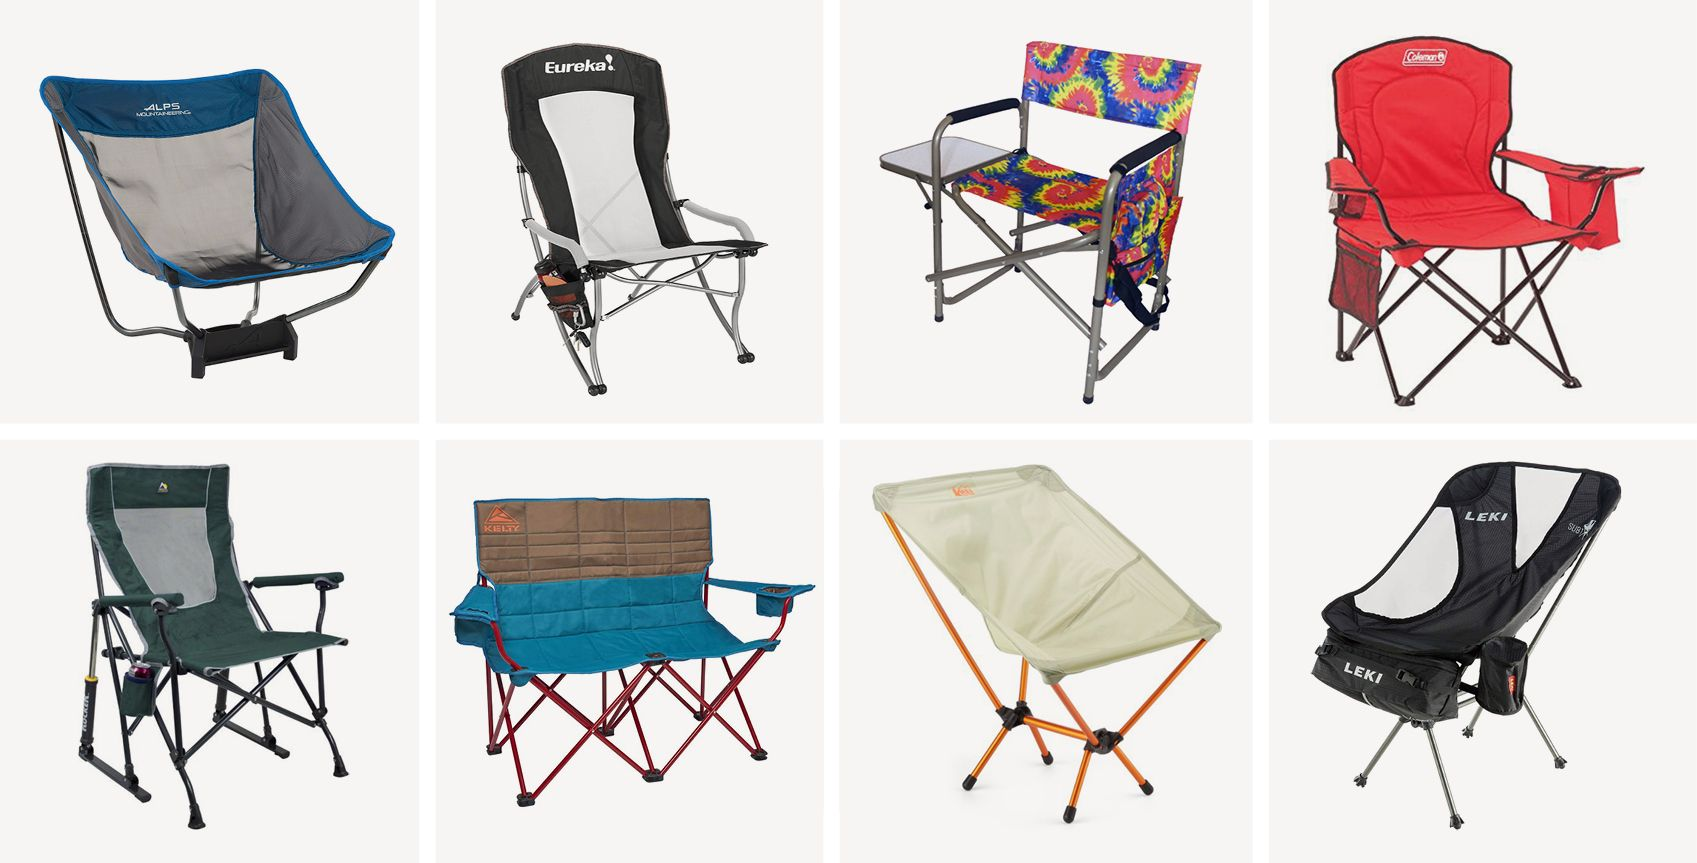 Awe Inspiring Best Camping Chairs 2019 Lightweight And Portable Camping Short Links Chair Design For Home Short Linksinfo